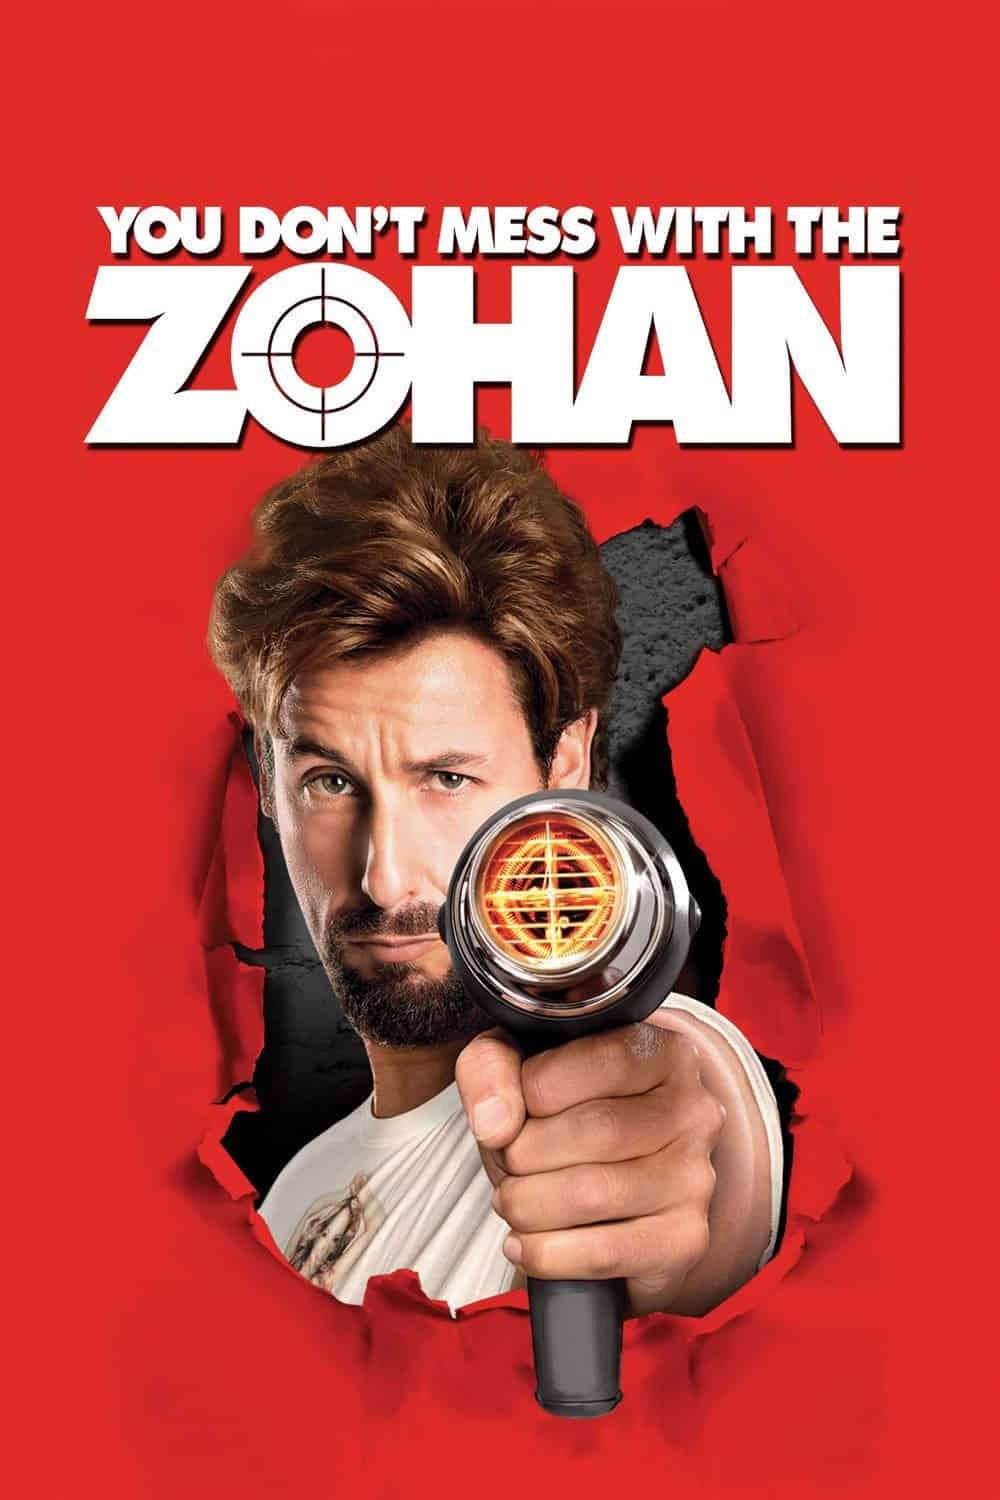 You Don't Mess with the Zohan, 2008